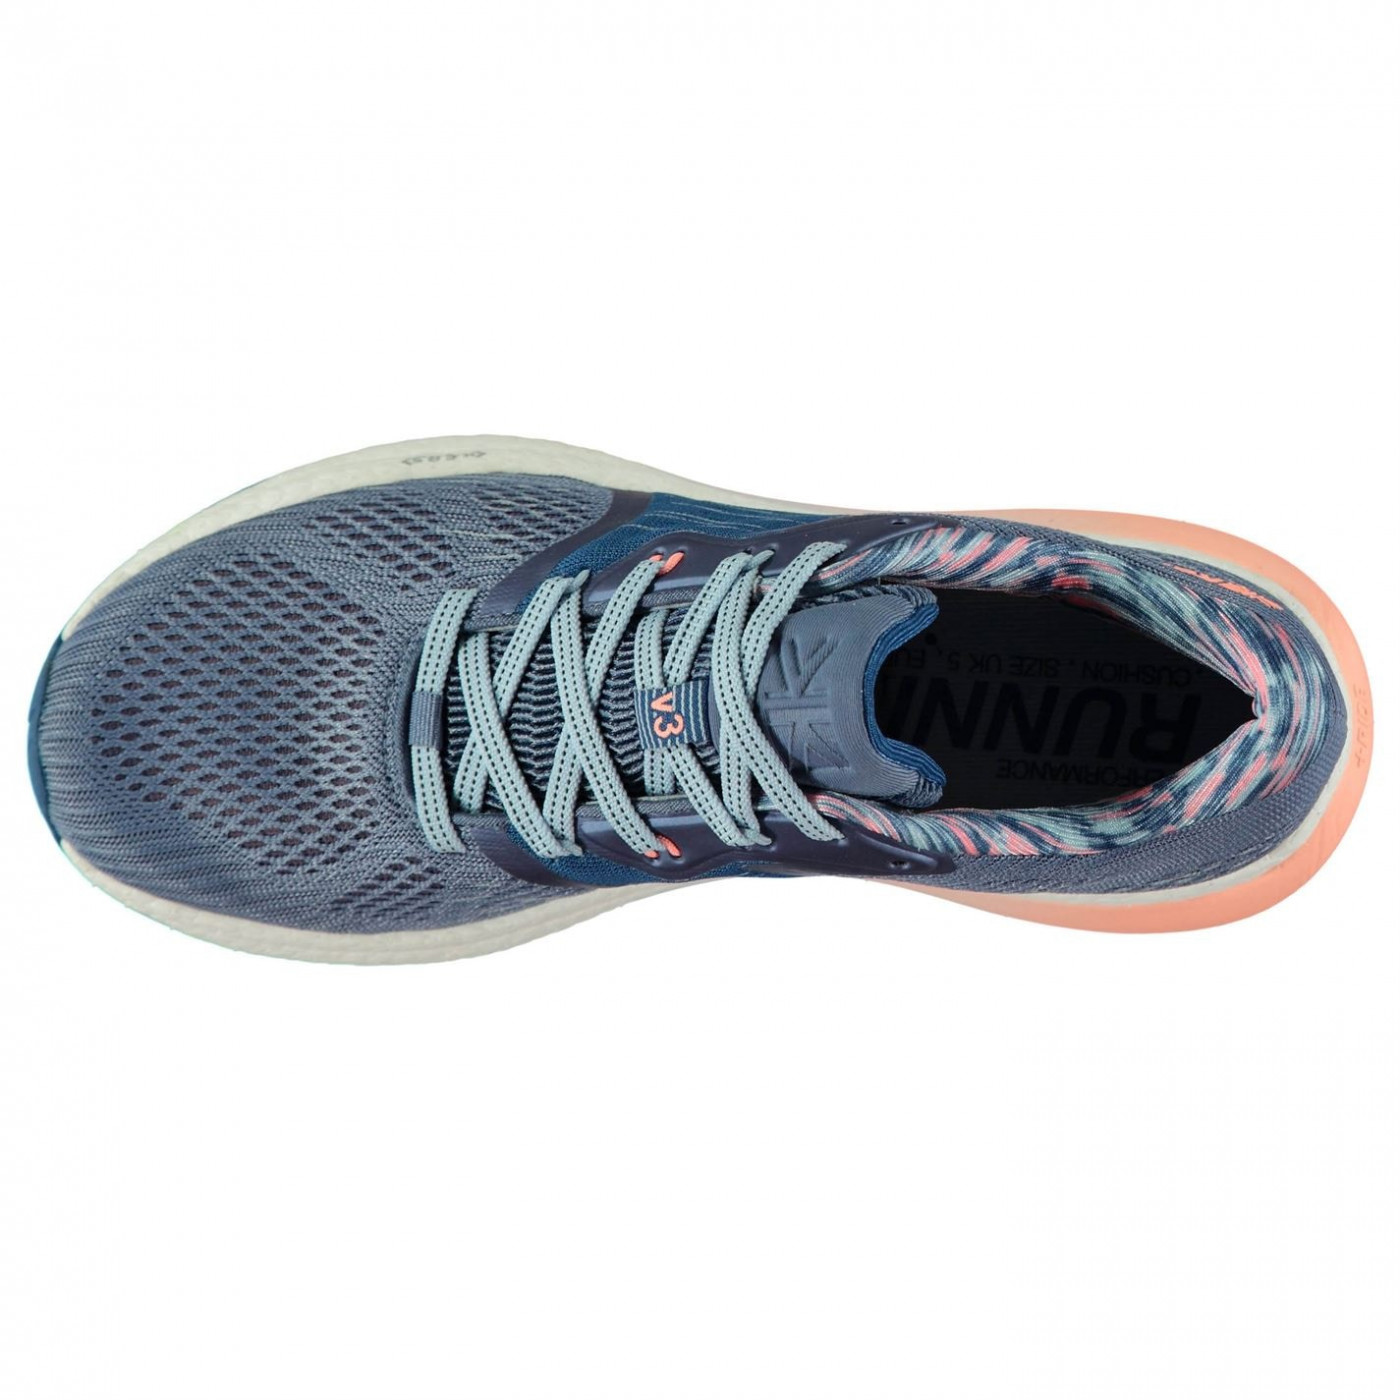 a053f846061 Karrimor - Excel 3 Ladies Running Shoes